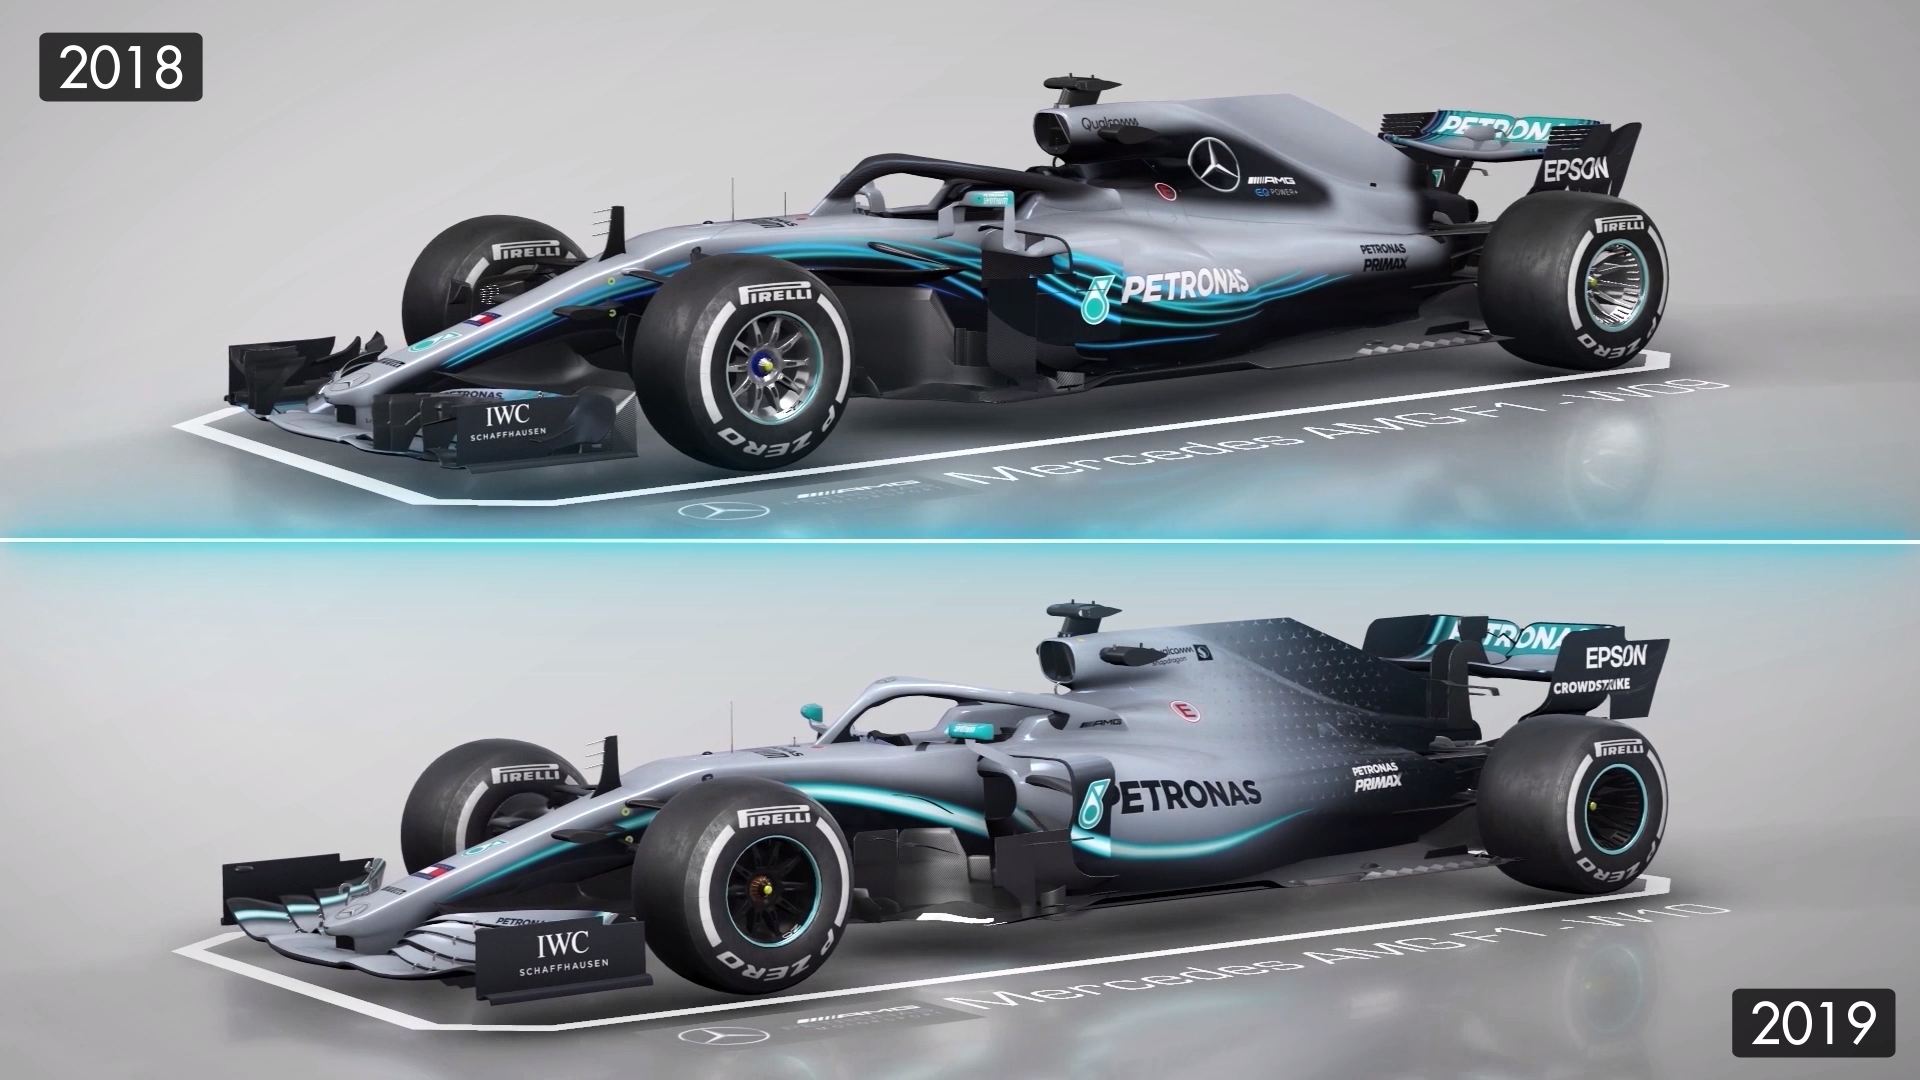 Mercedes 2018 And 2019 F1 Cars Compared Formula 1 Videos